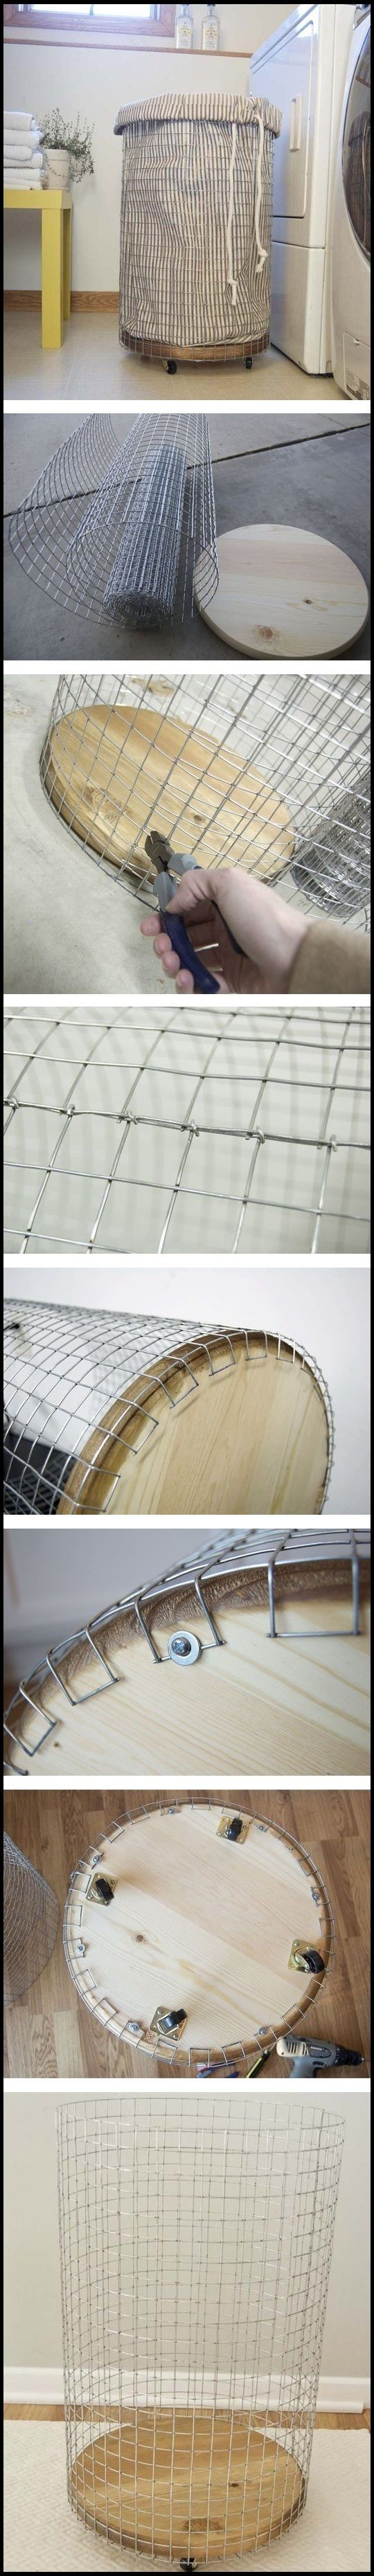 Cheap & Chic: How To Make a French-Vintage-Inspired Wire Hamper